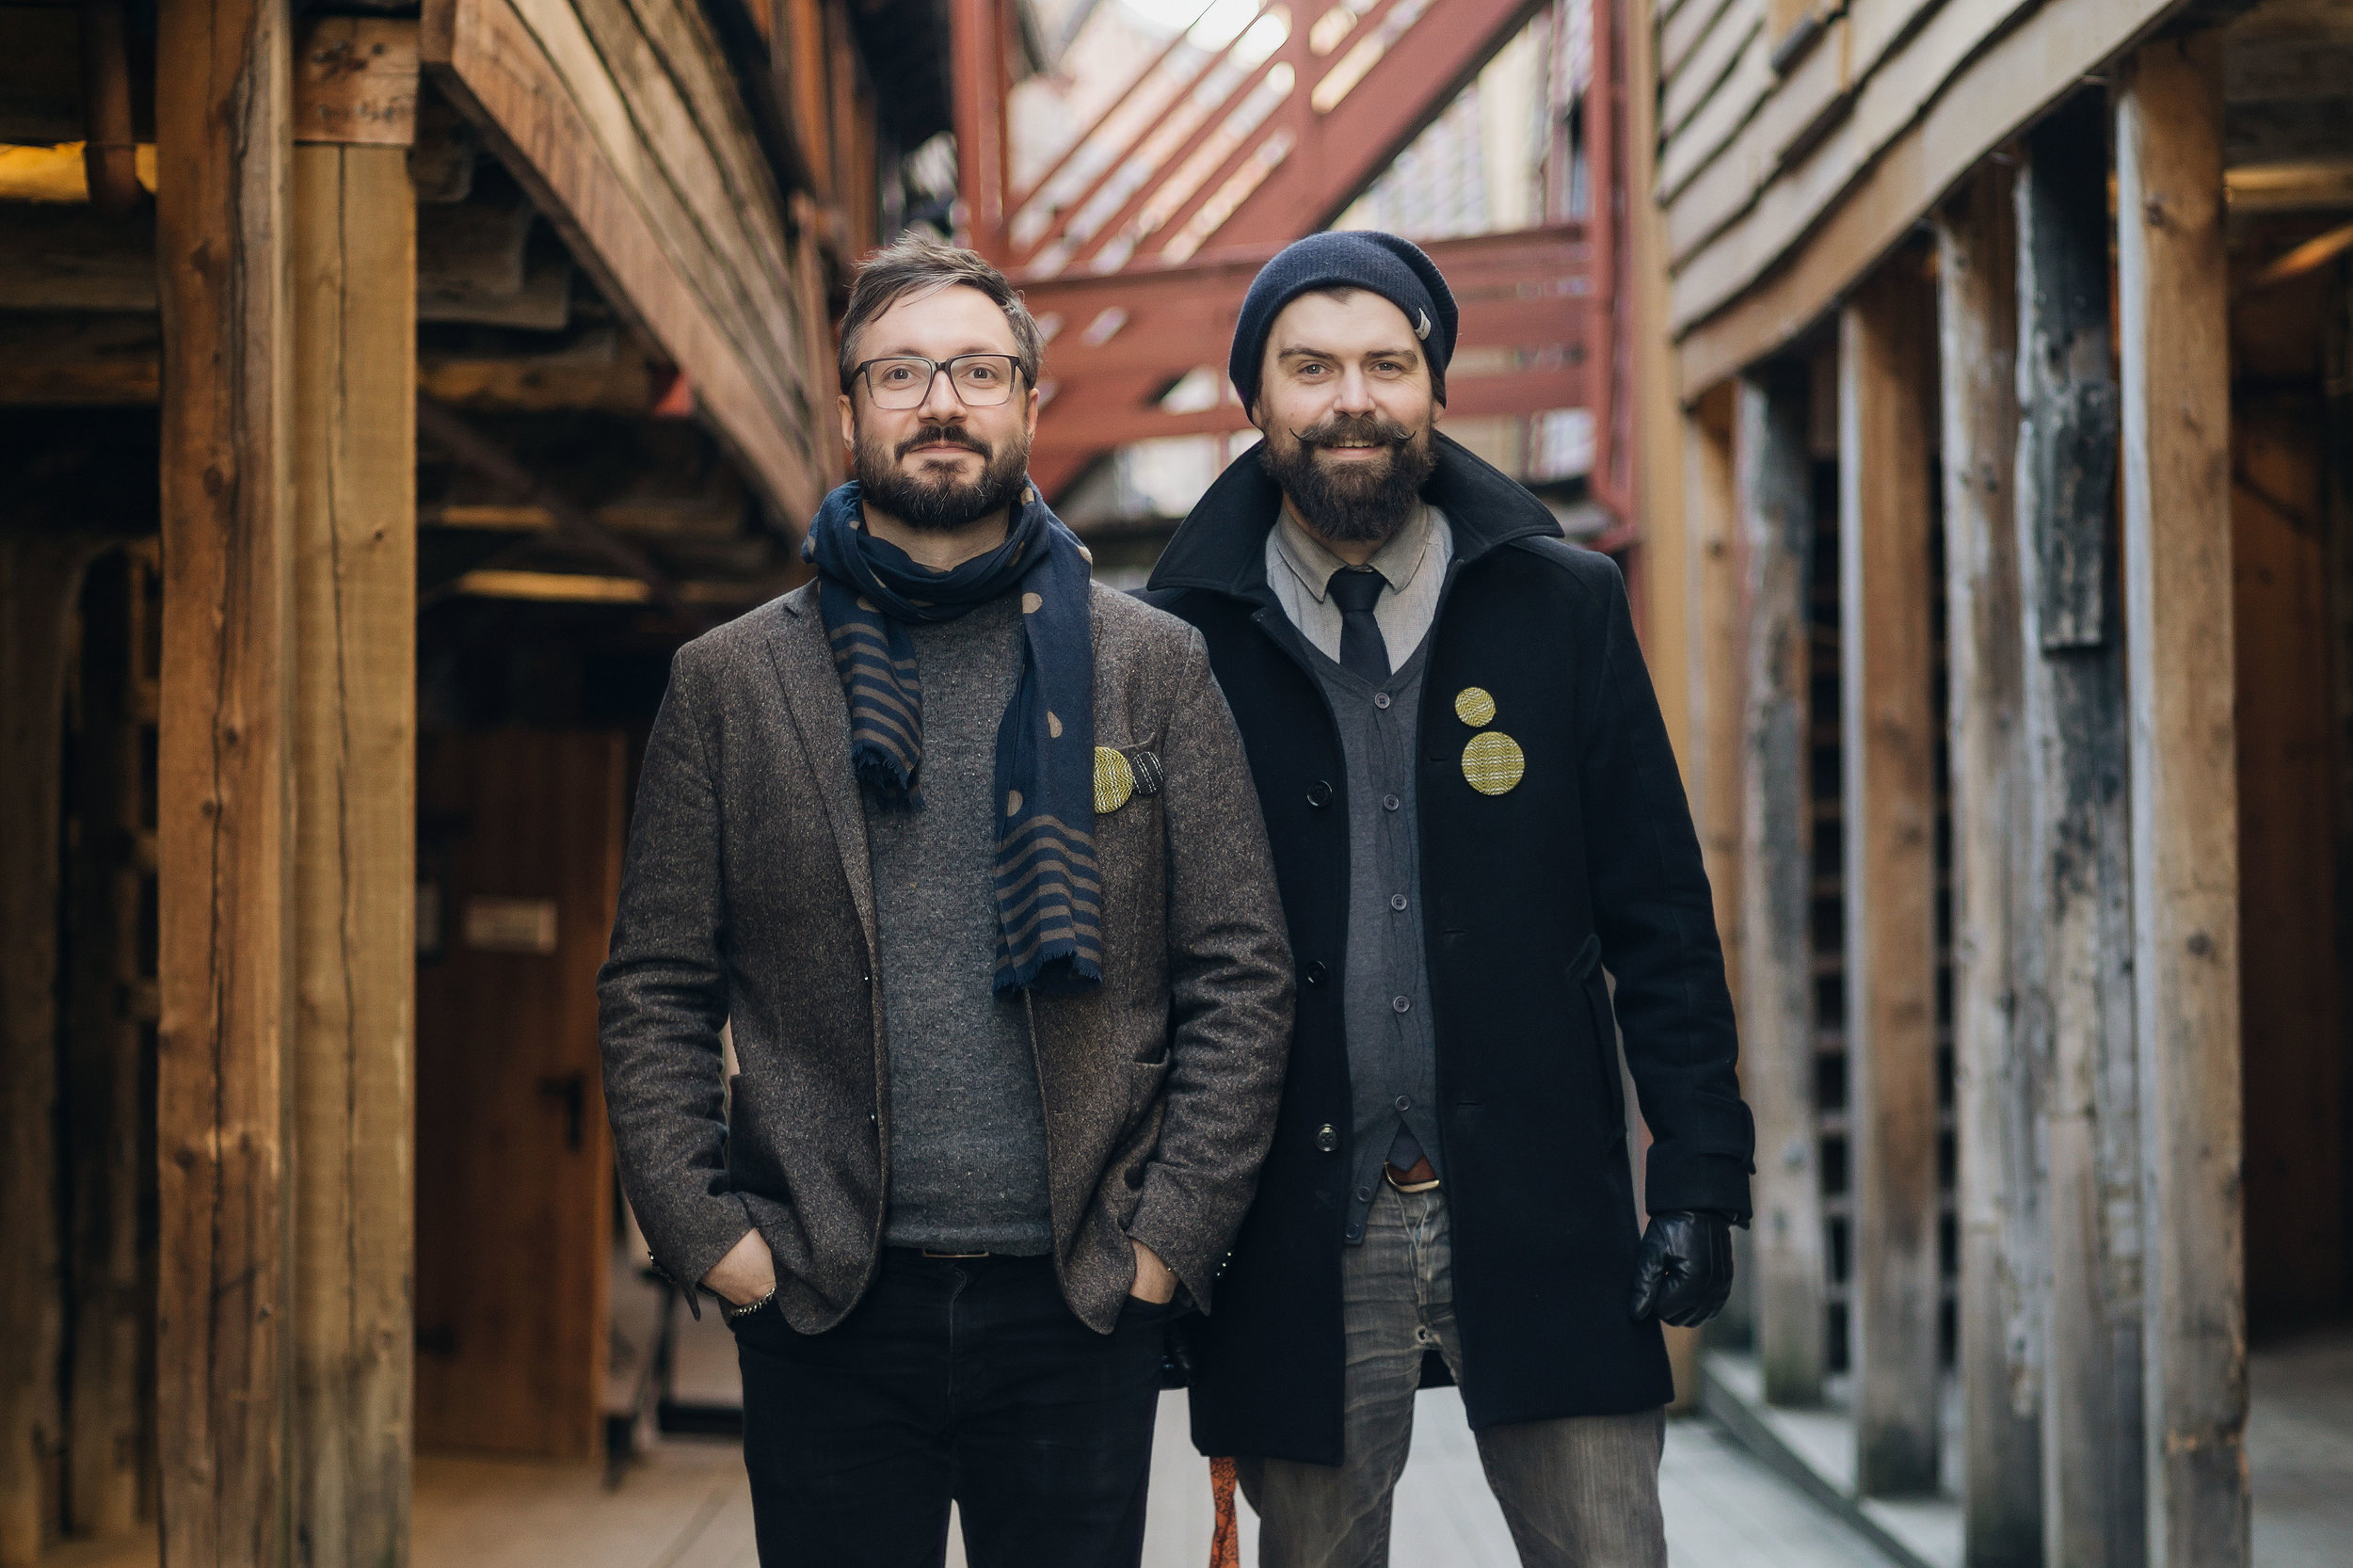 photography by: Jacob Lysgaard. Jørgen & Håvard at bryggen Bergen.